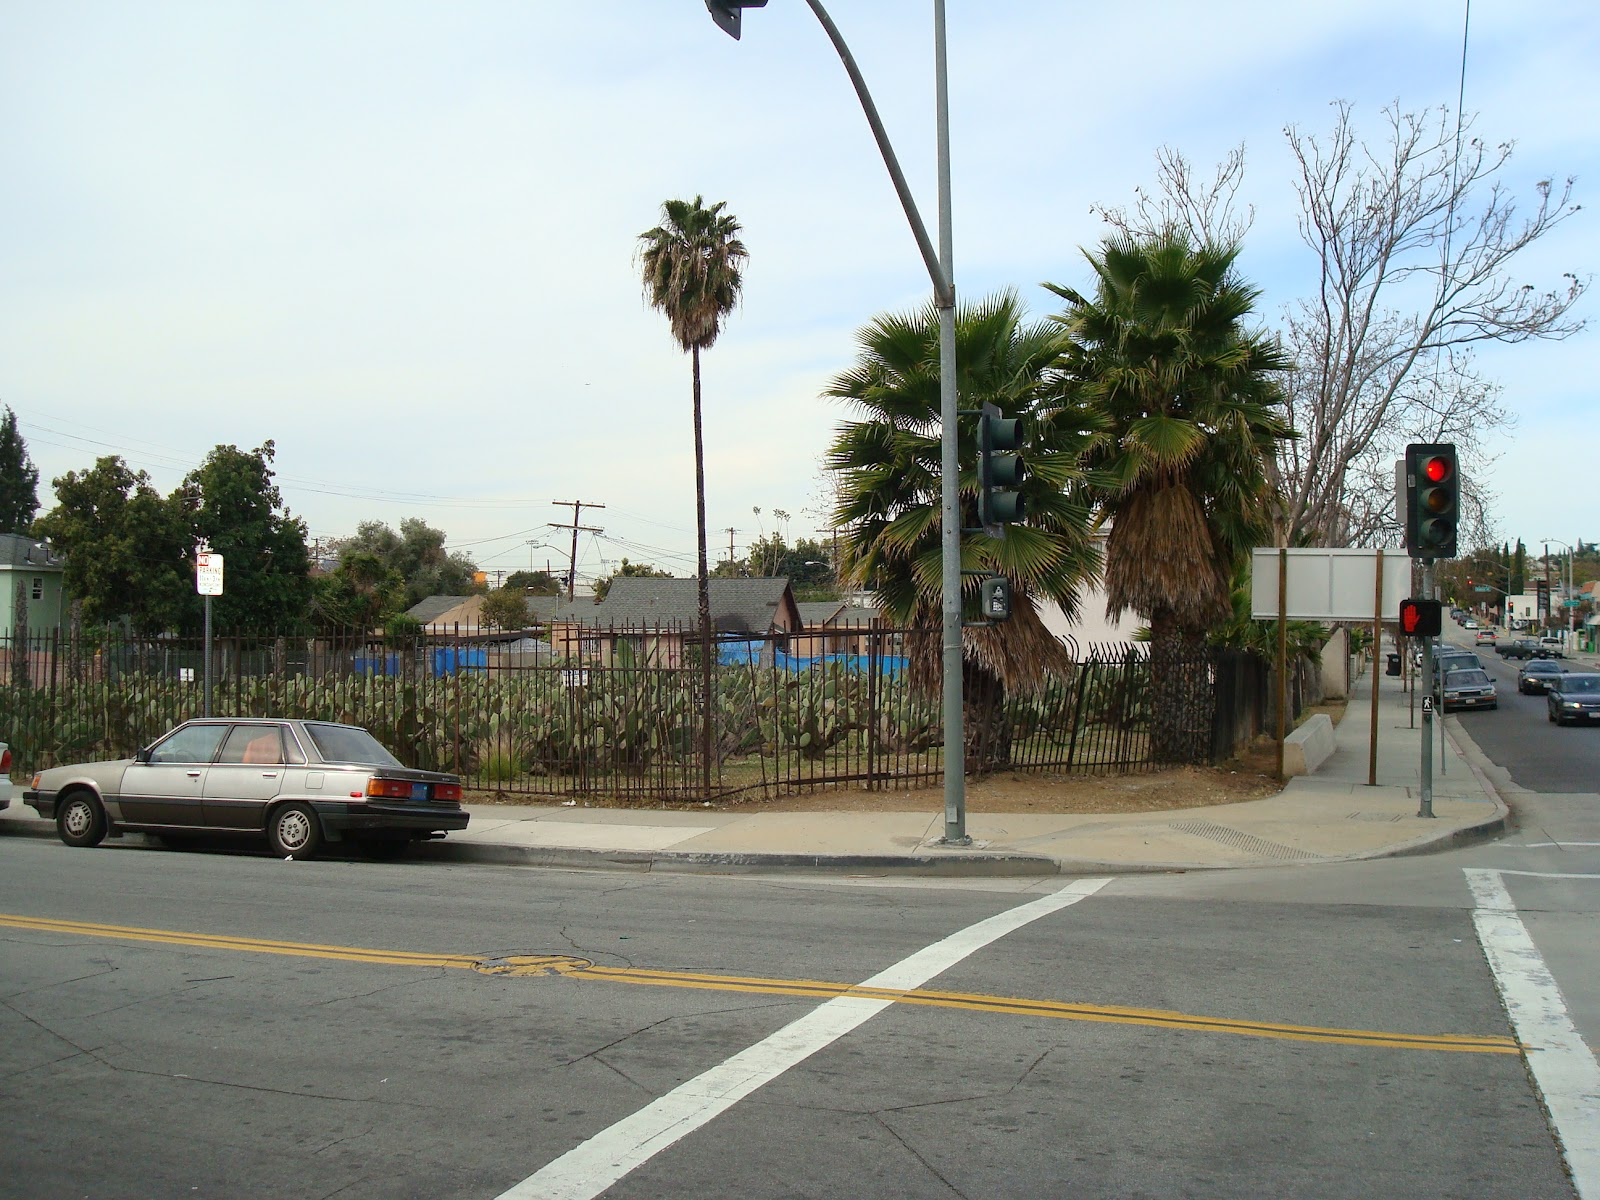 Los angeles revisited history of east los angeles cal the area is belvedere long established as a mexican american enclave the developer janss subdivided this suburb belvedere heights in the 1910s yadclub Gallery